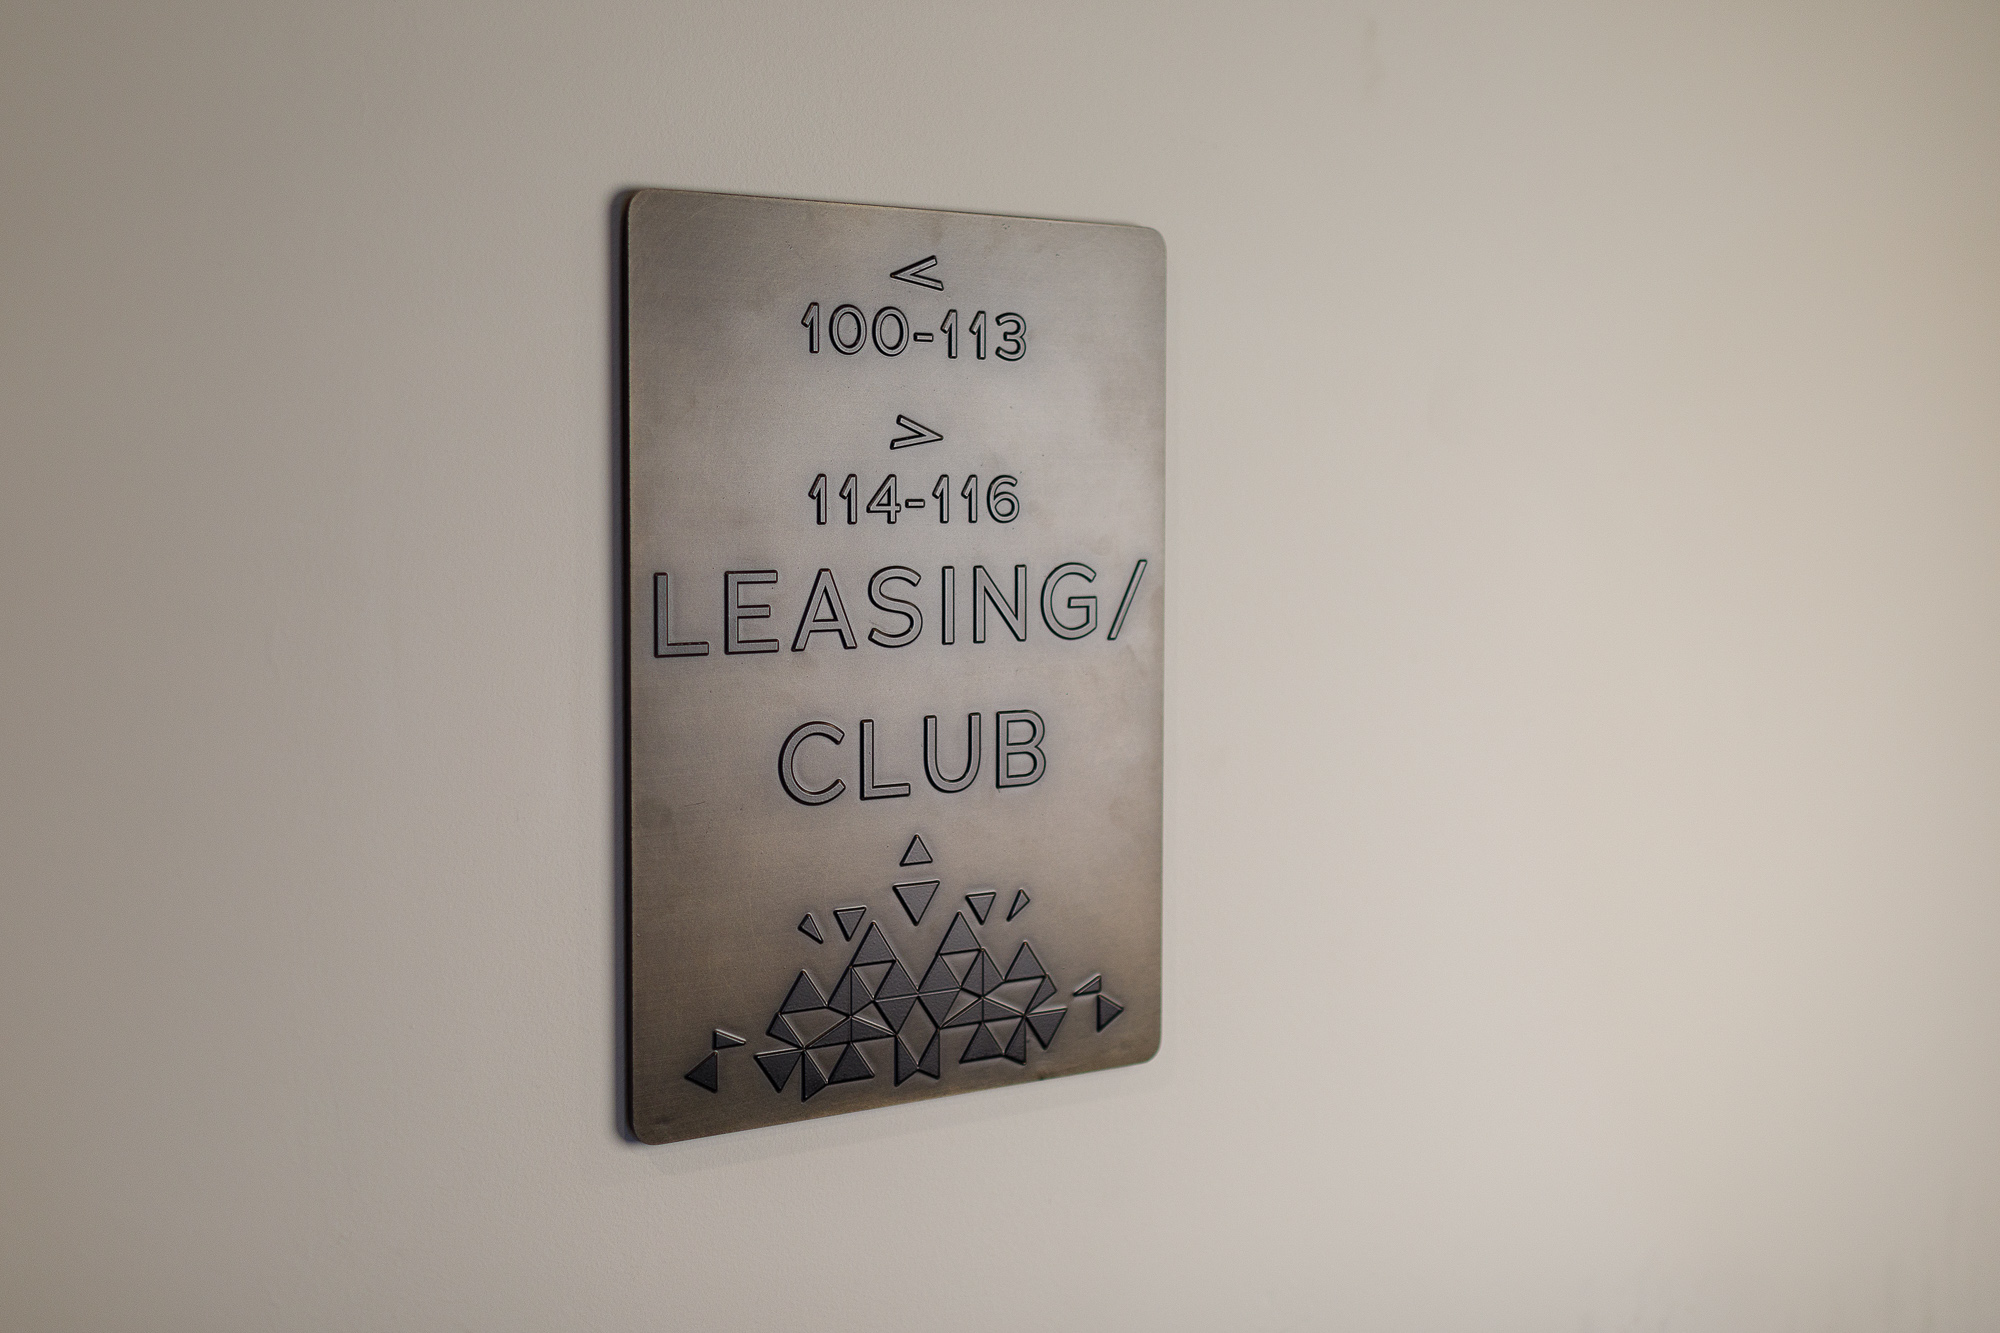 Vertis-Green-Hills_wayfinding-signage-Room numbers-leasing club_MG_6207_small 2000 px.jpg